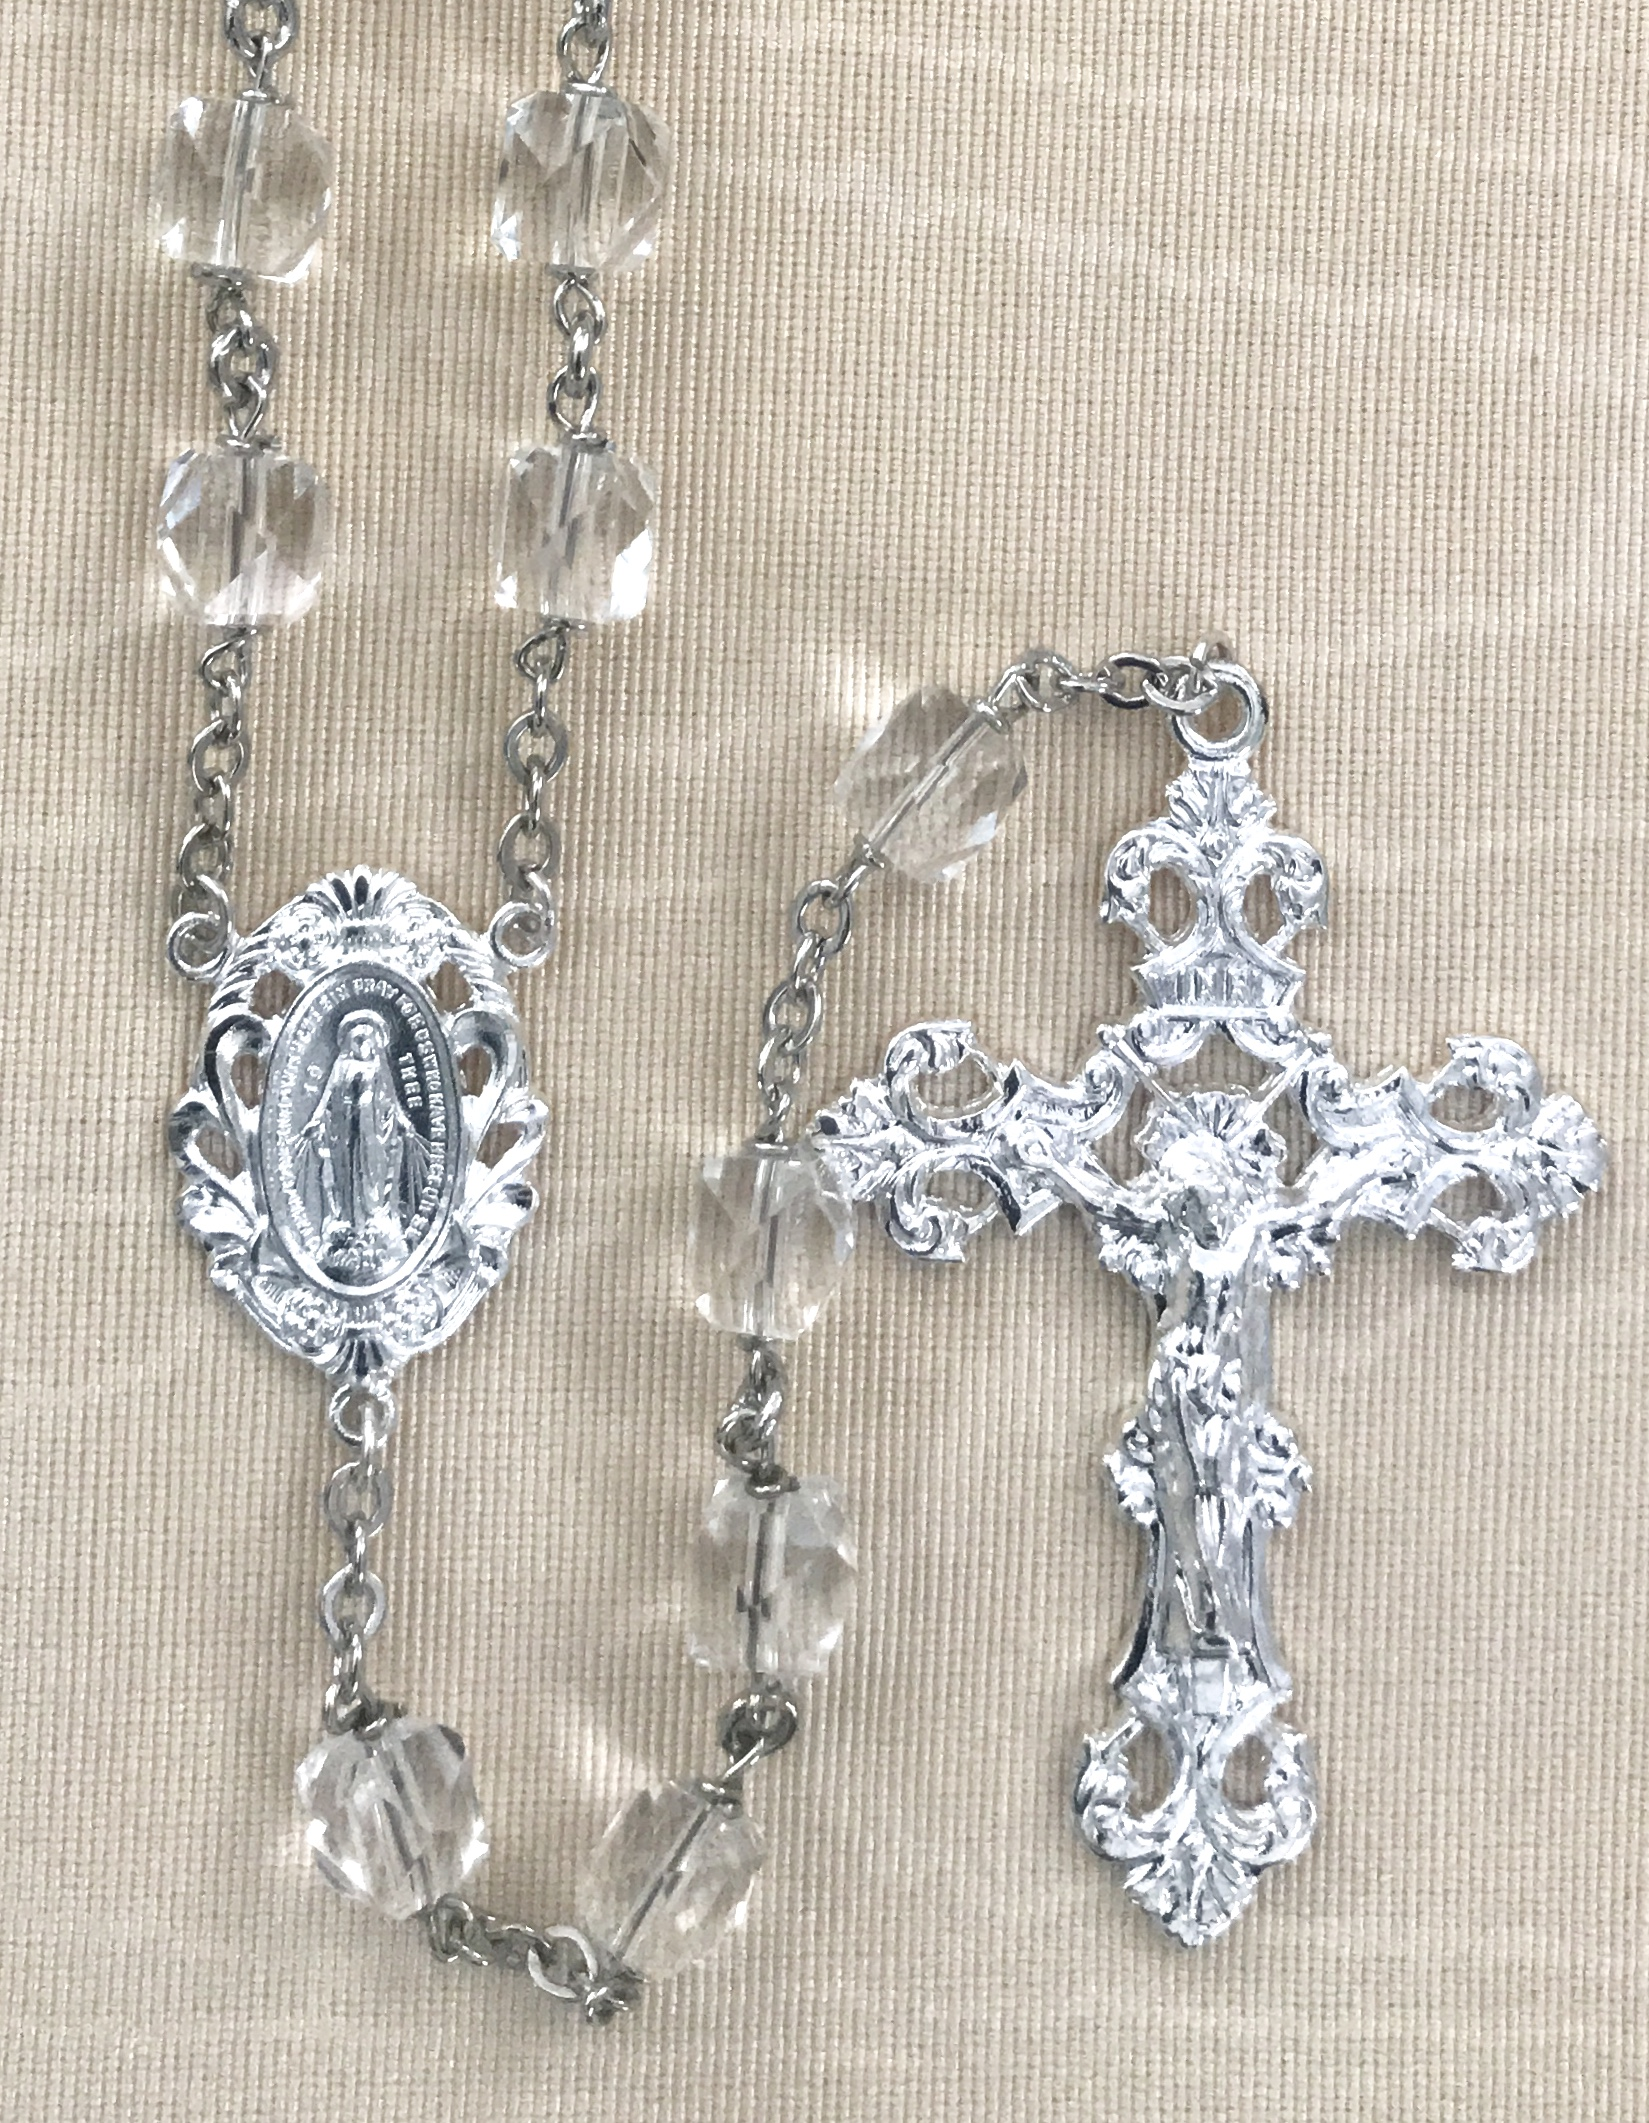 7mm MULTI FACETTED ROCK CRYSTAL BEAD STERLING SILVER PLATED ROSARY GIFT BOXED